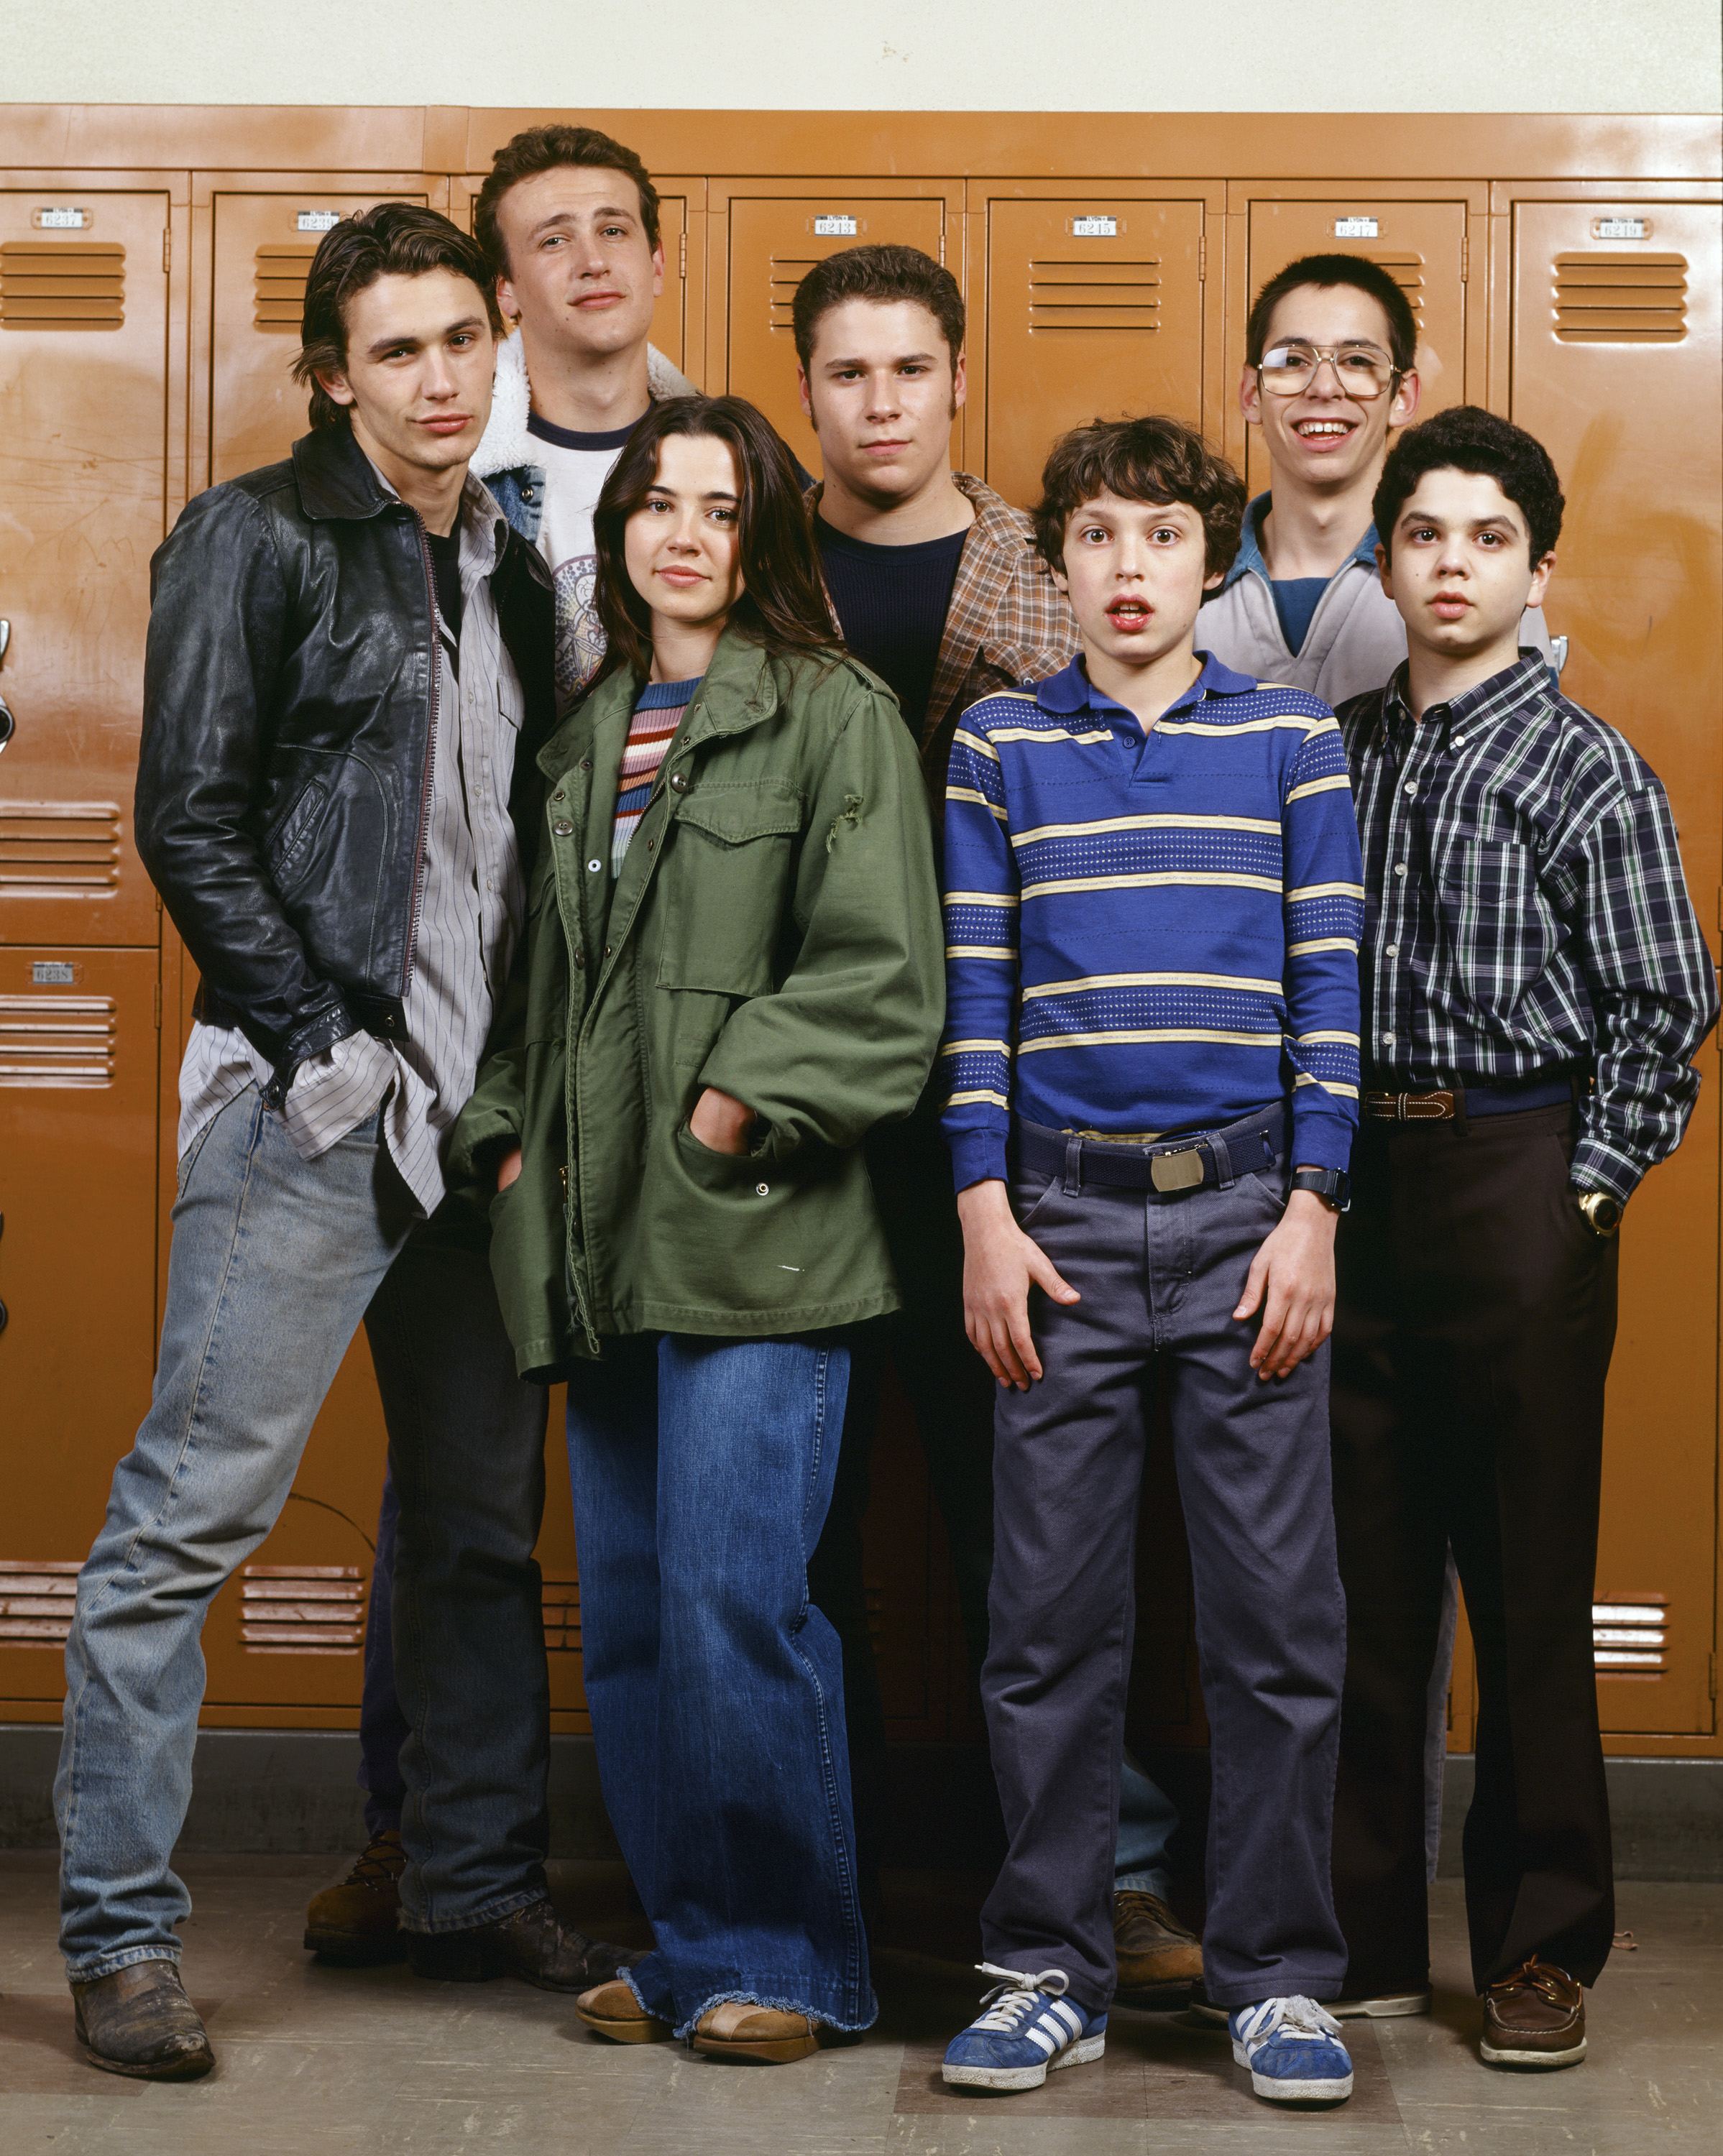 Class of '99: The cast of Freaks and Geeks, one of the first series I reviewed for TIME.